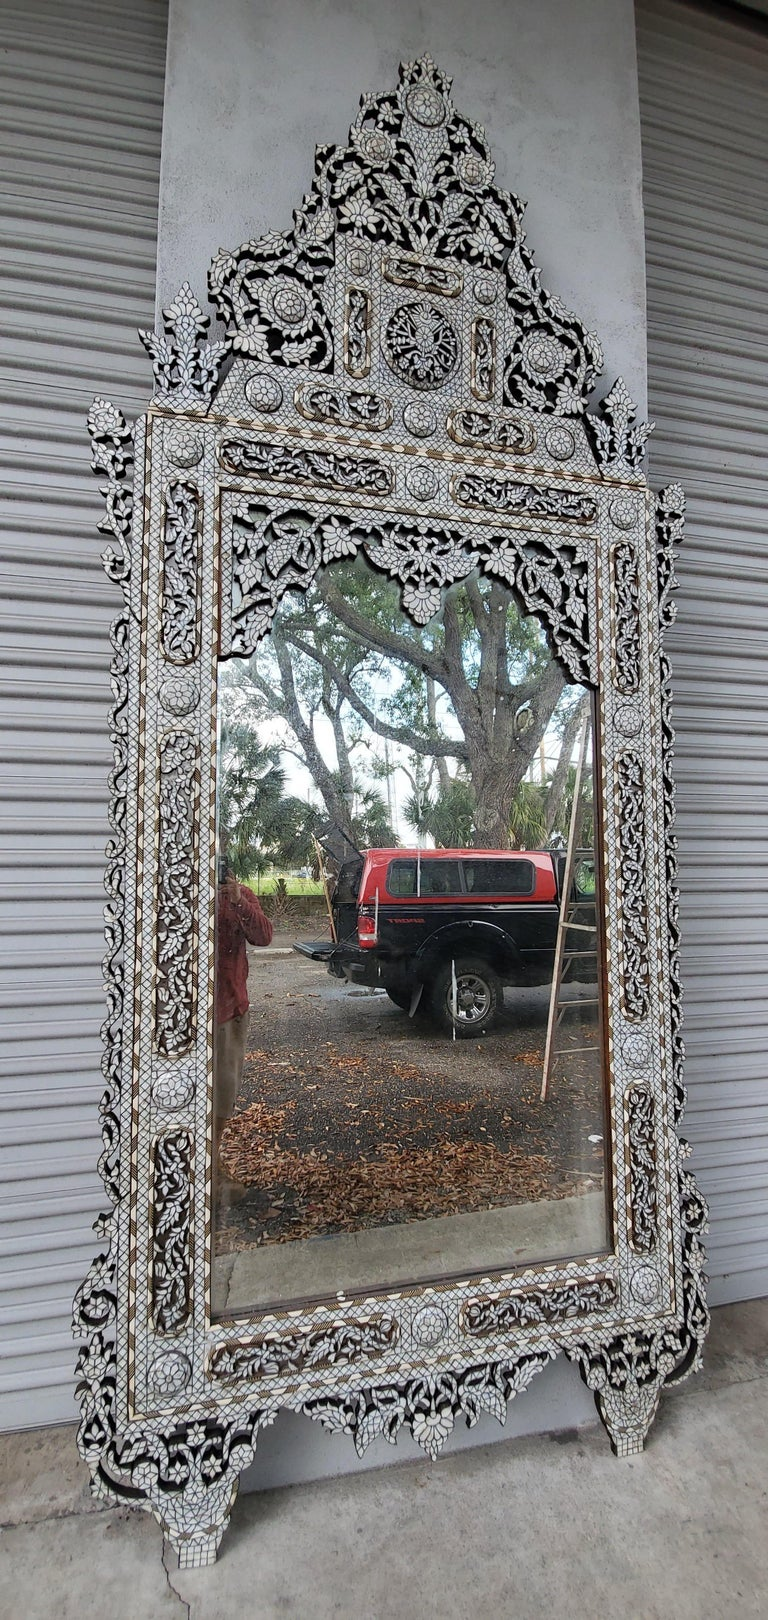 This antique handcrafted inlaid mirror is crafted from individuality cut pieces of mother of pearl and camel bone. The high bonnet top is geometric style design is detachable for easy transport. Details.